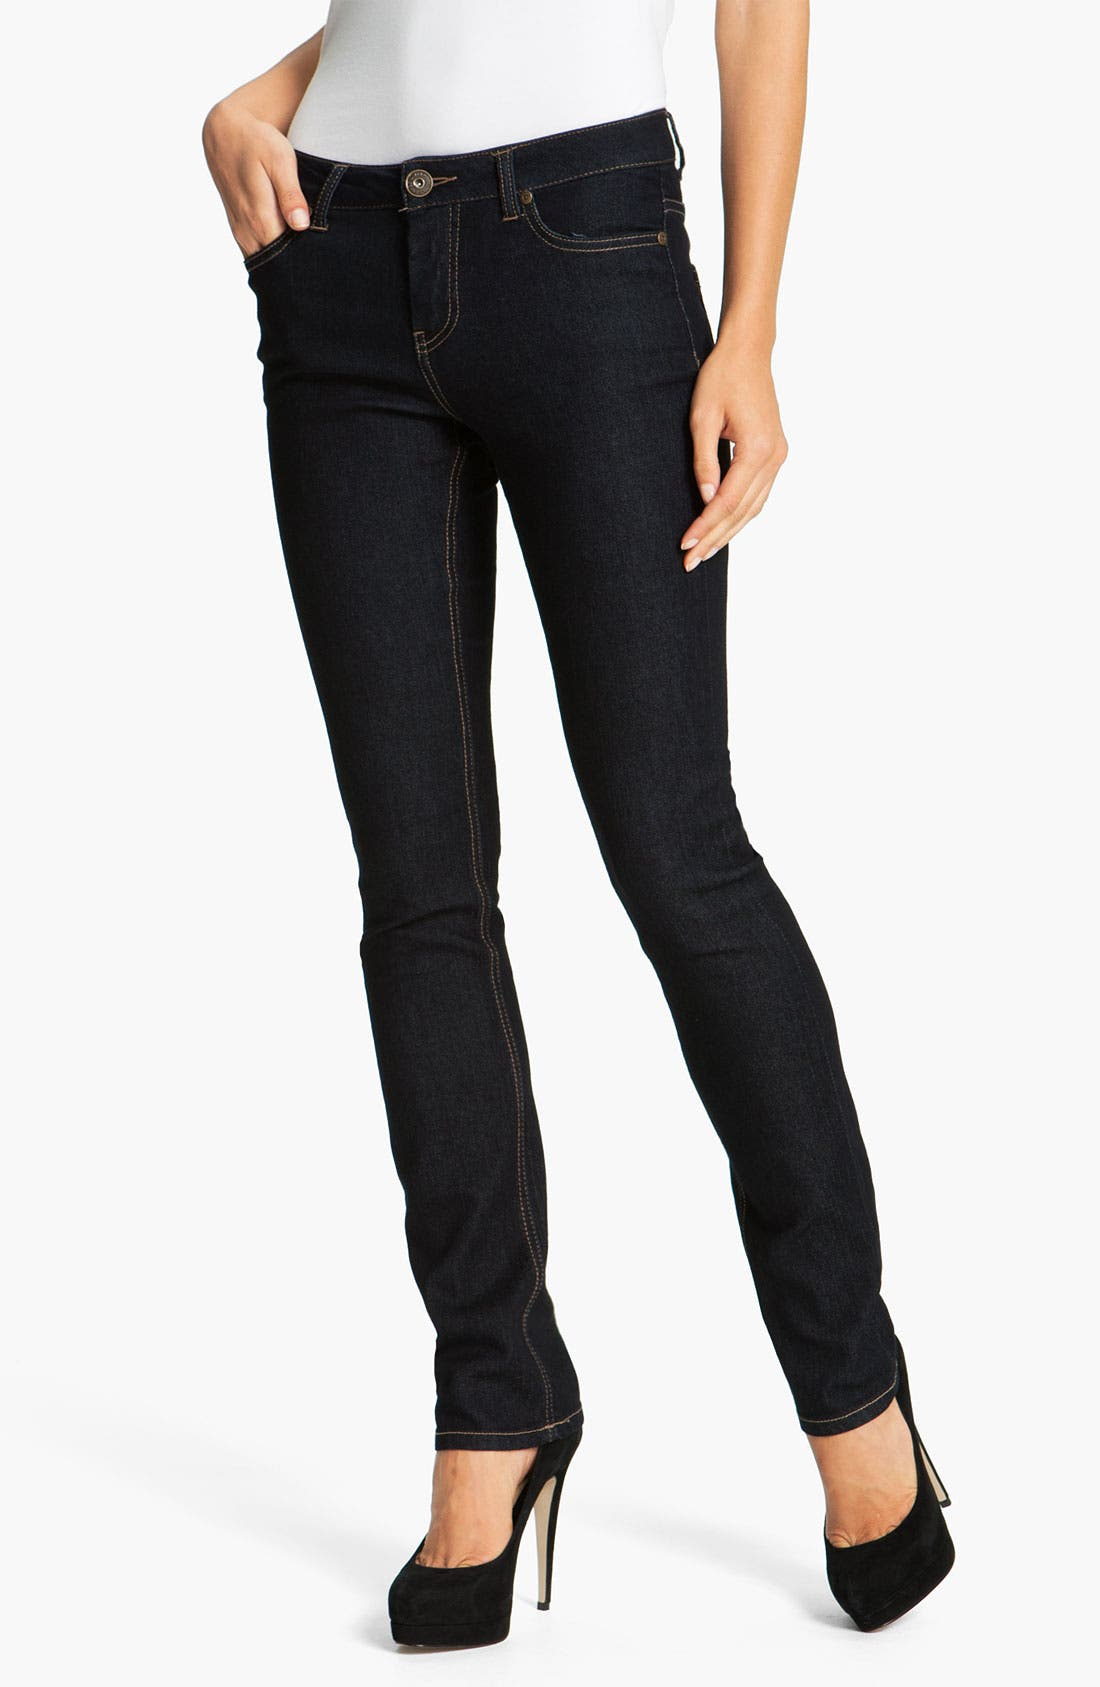 Alternate Image 2  - Liverpool Jeans Company 'Sadie' Straight Leg Supersoft Stretch Jeans (Petite) (Online Only)